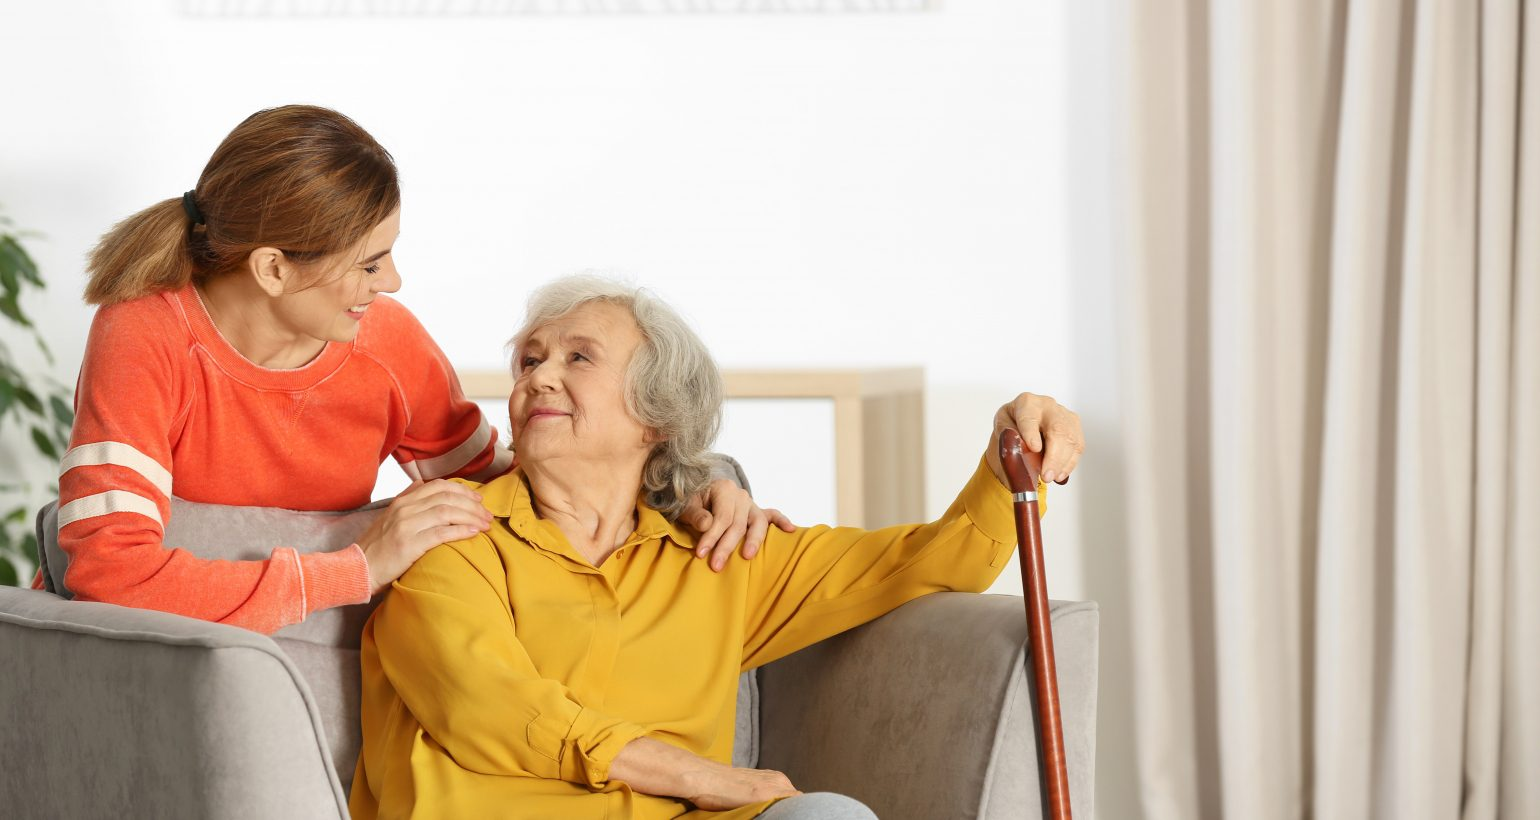 Elderly woman with female caregiver in living room